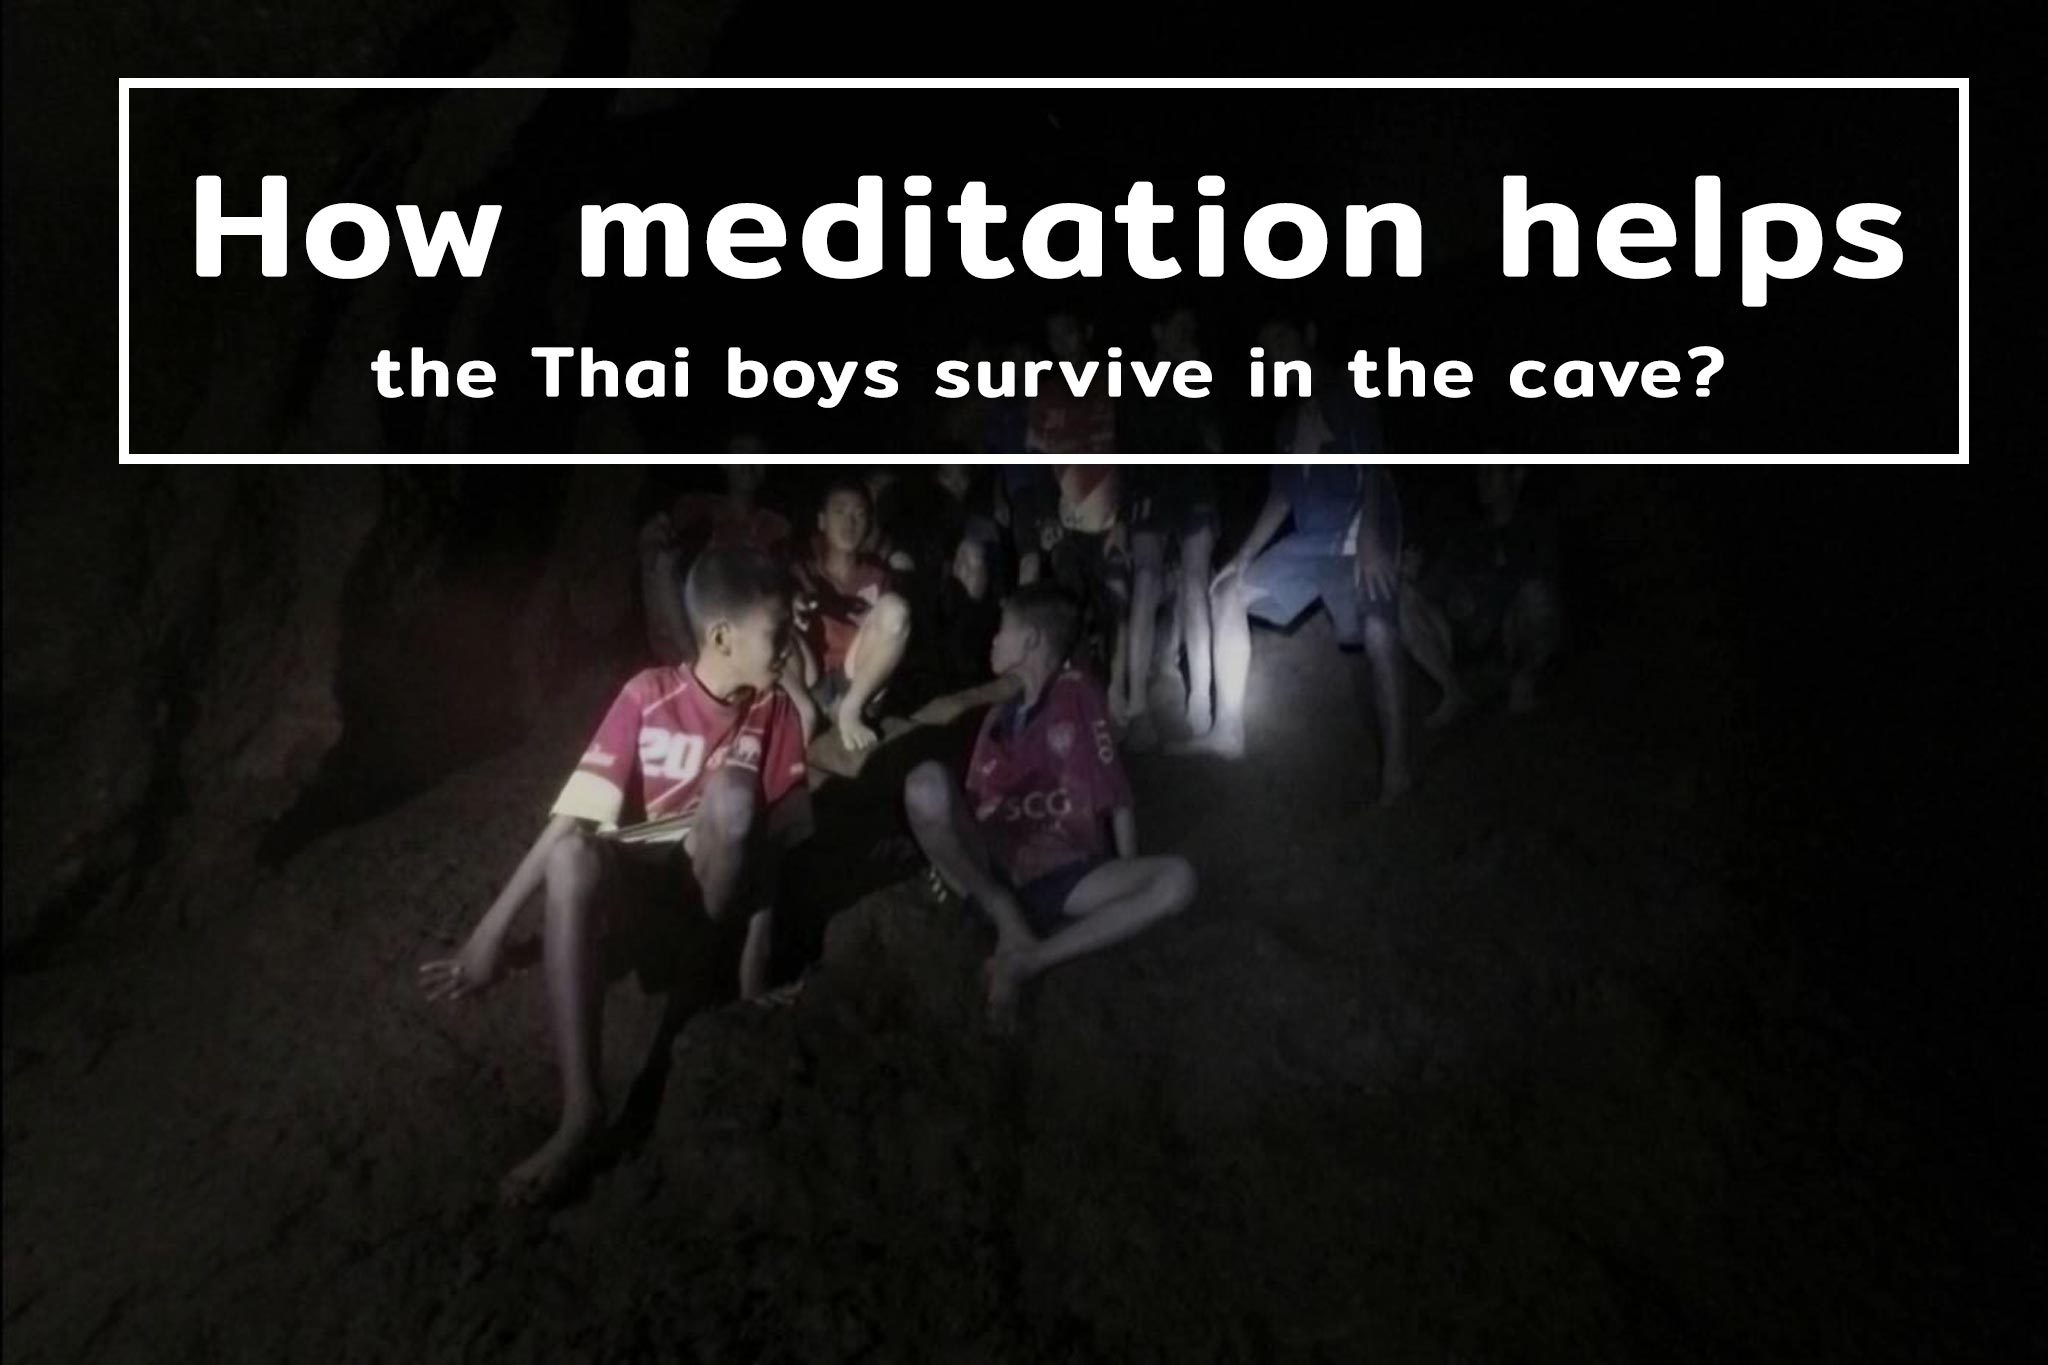 How Meditation Helps The Thai Boys Survive in the Cave?